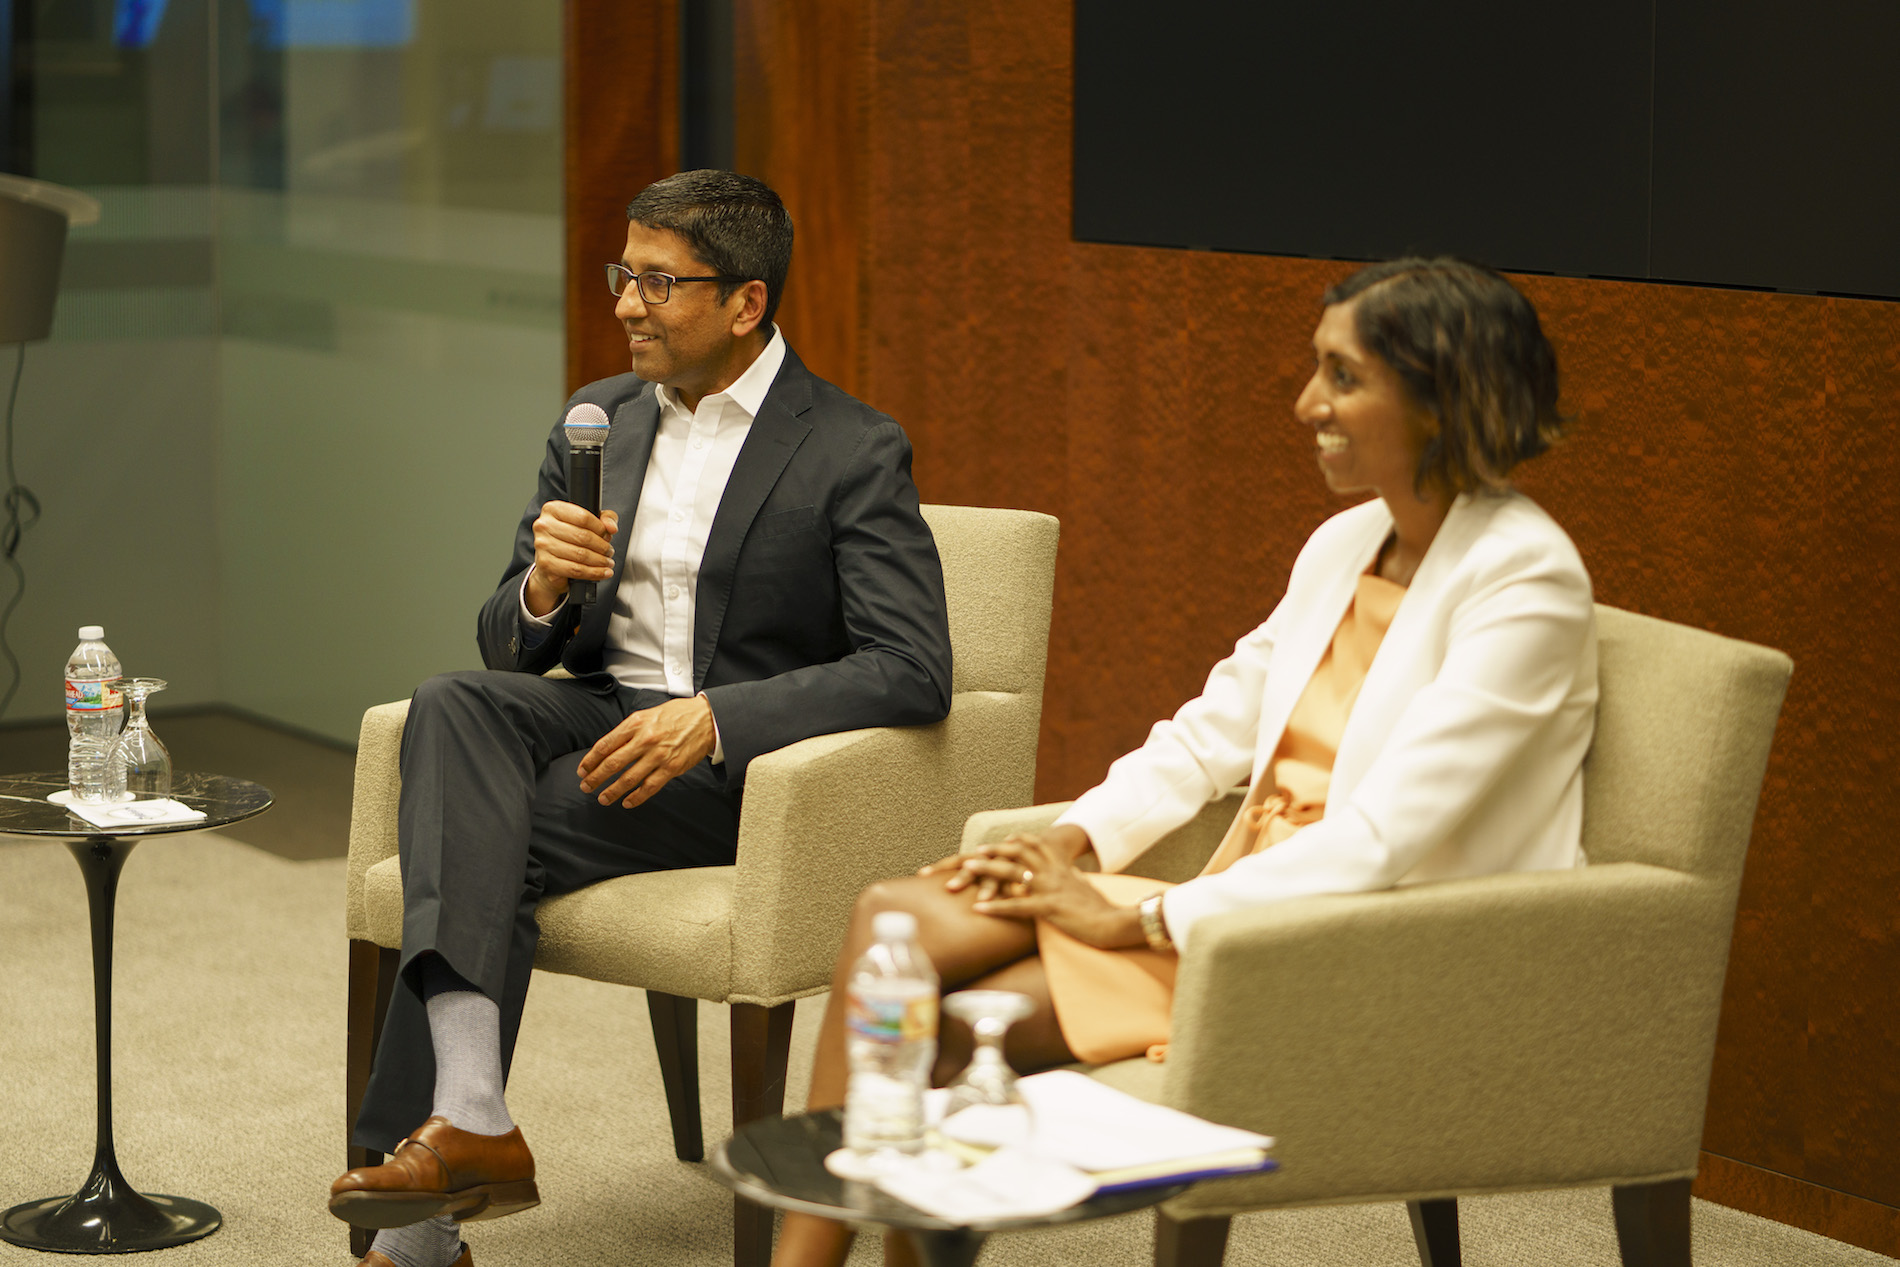 Judge Sri Srinivasan and moderator Kalpana Srinivasan on April 18, 2019, presented by SABA-SC